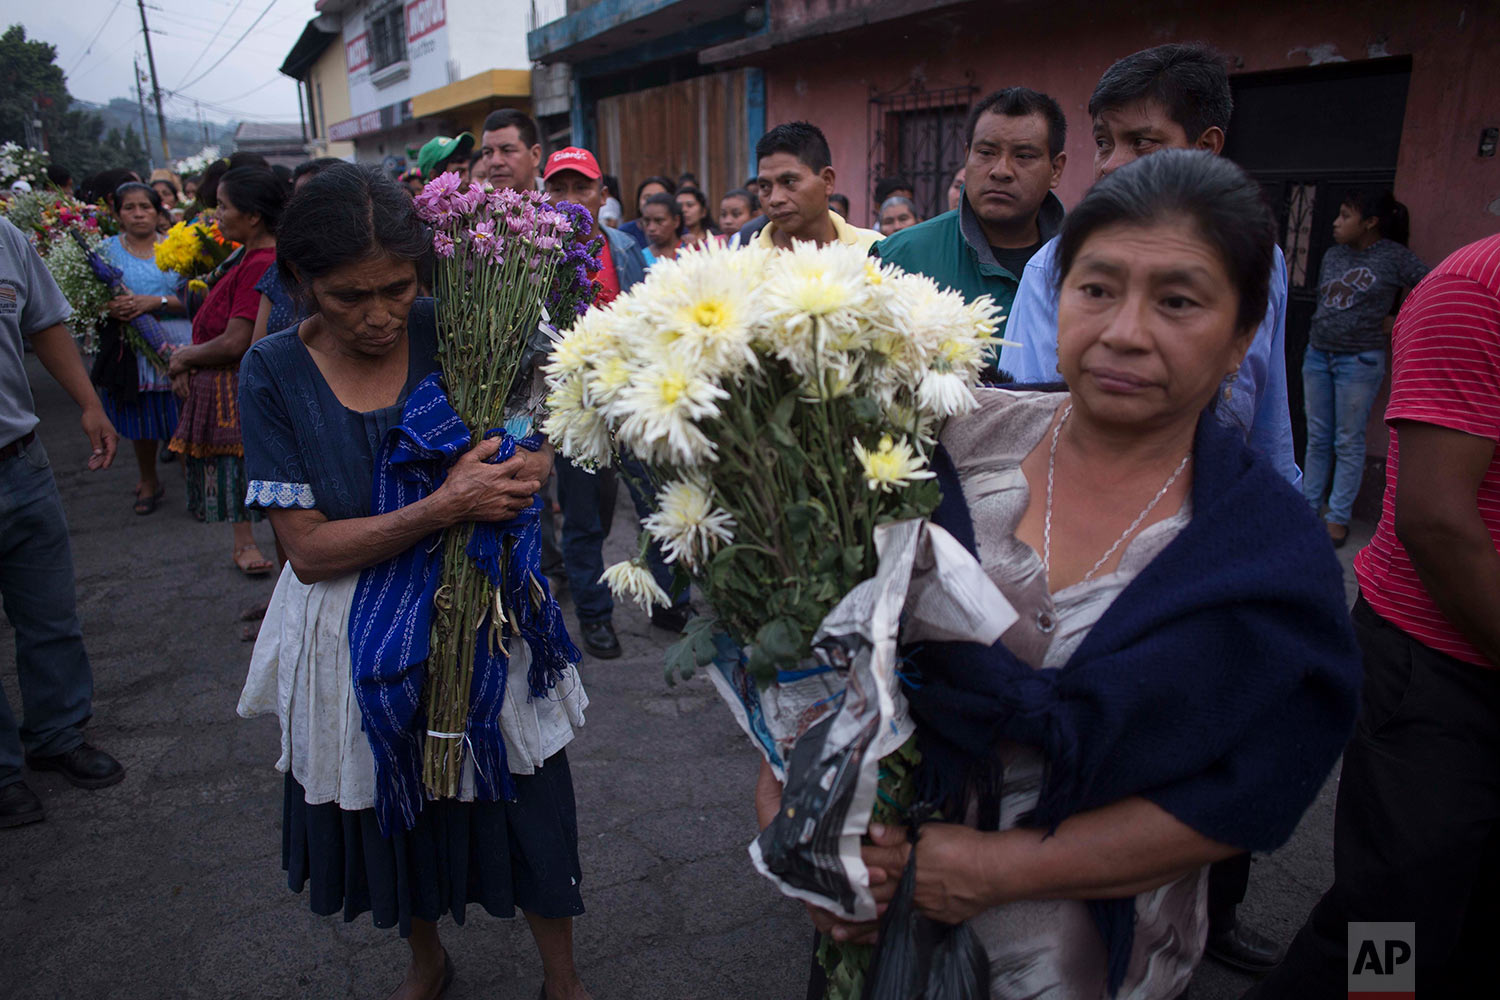 Women carry flowers during the funeral procession for seven people who died during the eruption of the Volcan de Fuego, which in Spanish means Volcano of Fire, as they make their way to the cemetery in San Juan Alotenango, Guatemala, Monday, June 4, 2018. Residents of villages skirting the volcano began mourning the dead after an eruption buried them in searing ash and mud. (AP Photo/Luis Soto)